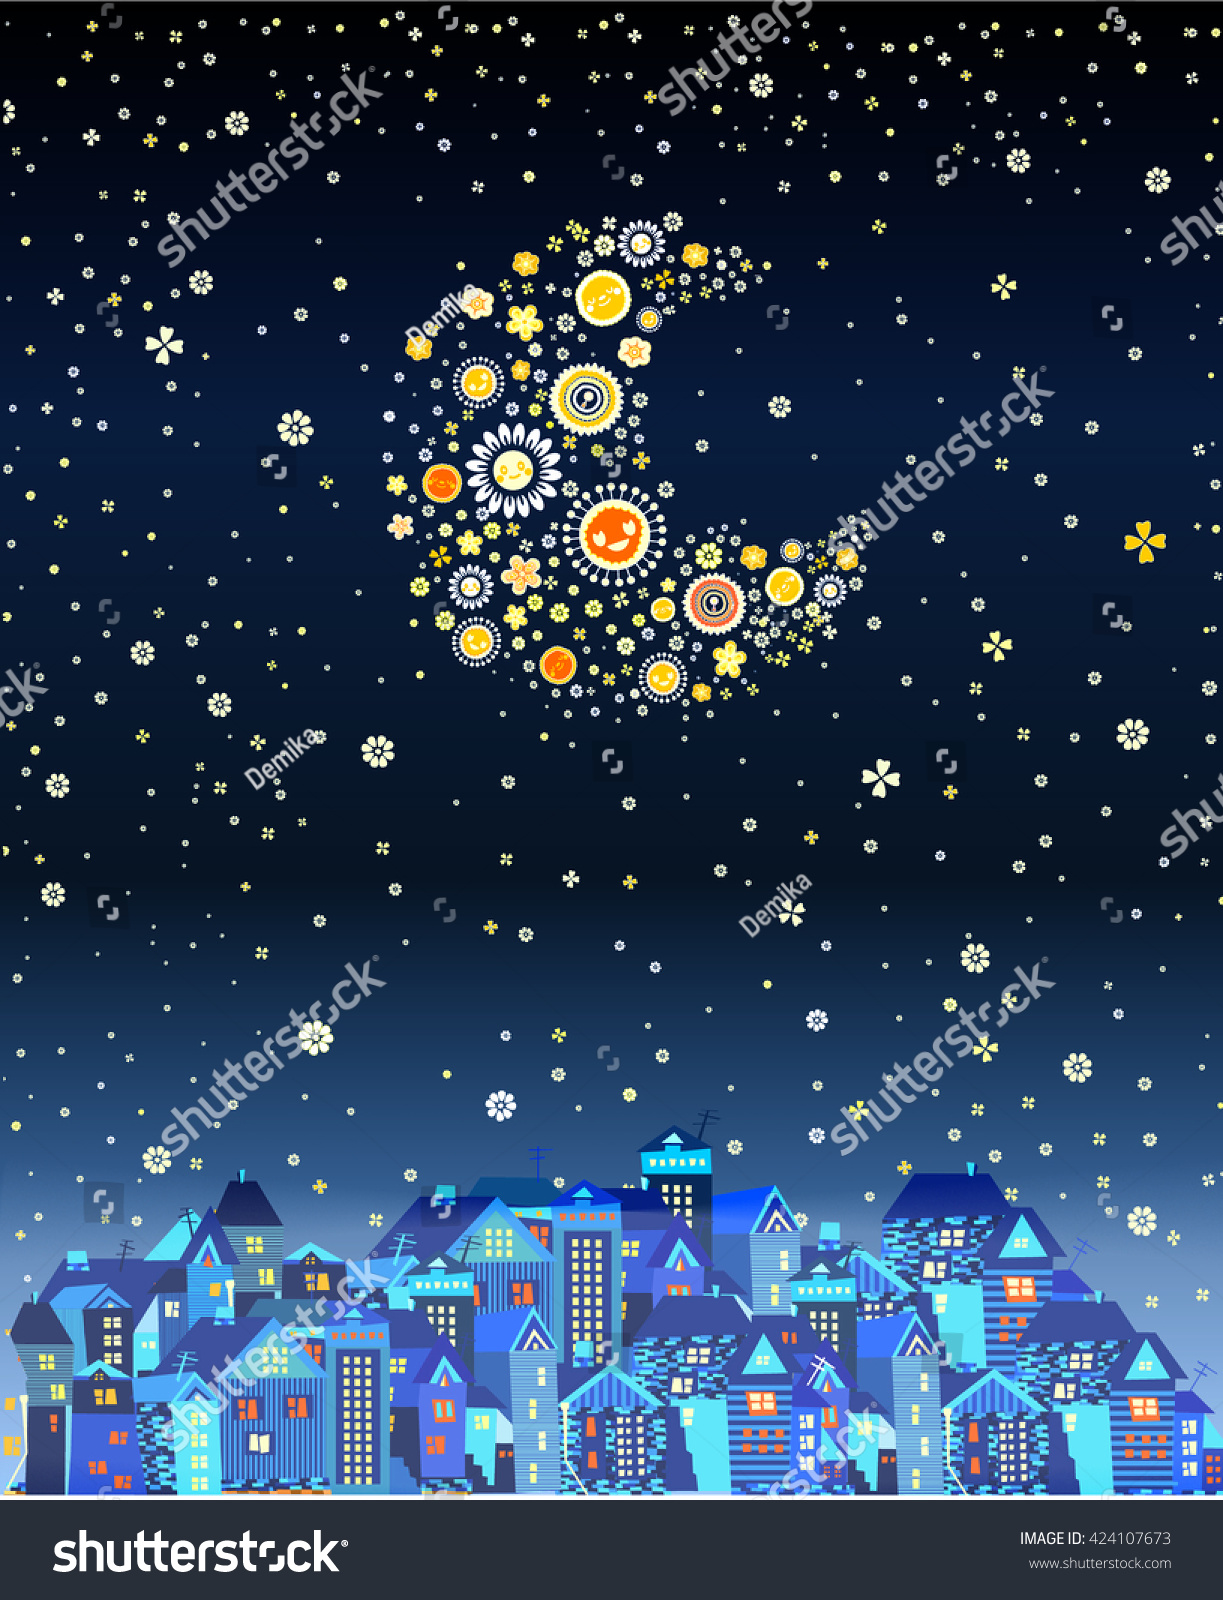 Beautiful night city stars moon made stock vector 424107673 beautiful night city with the stars and the moon made of flowers the moon izmirmasajfo